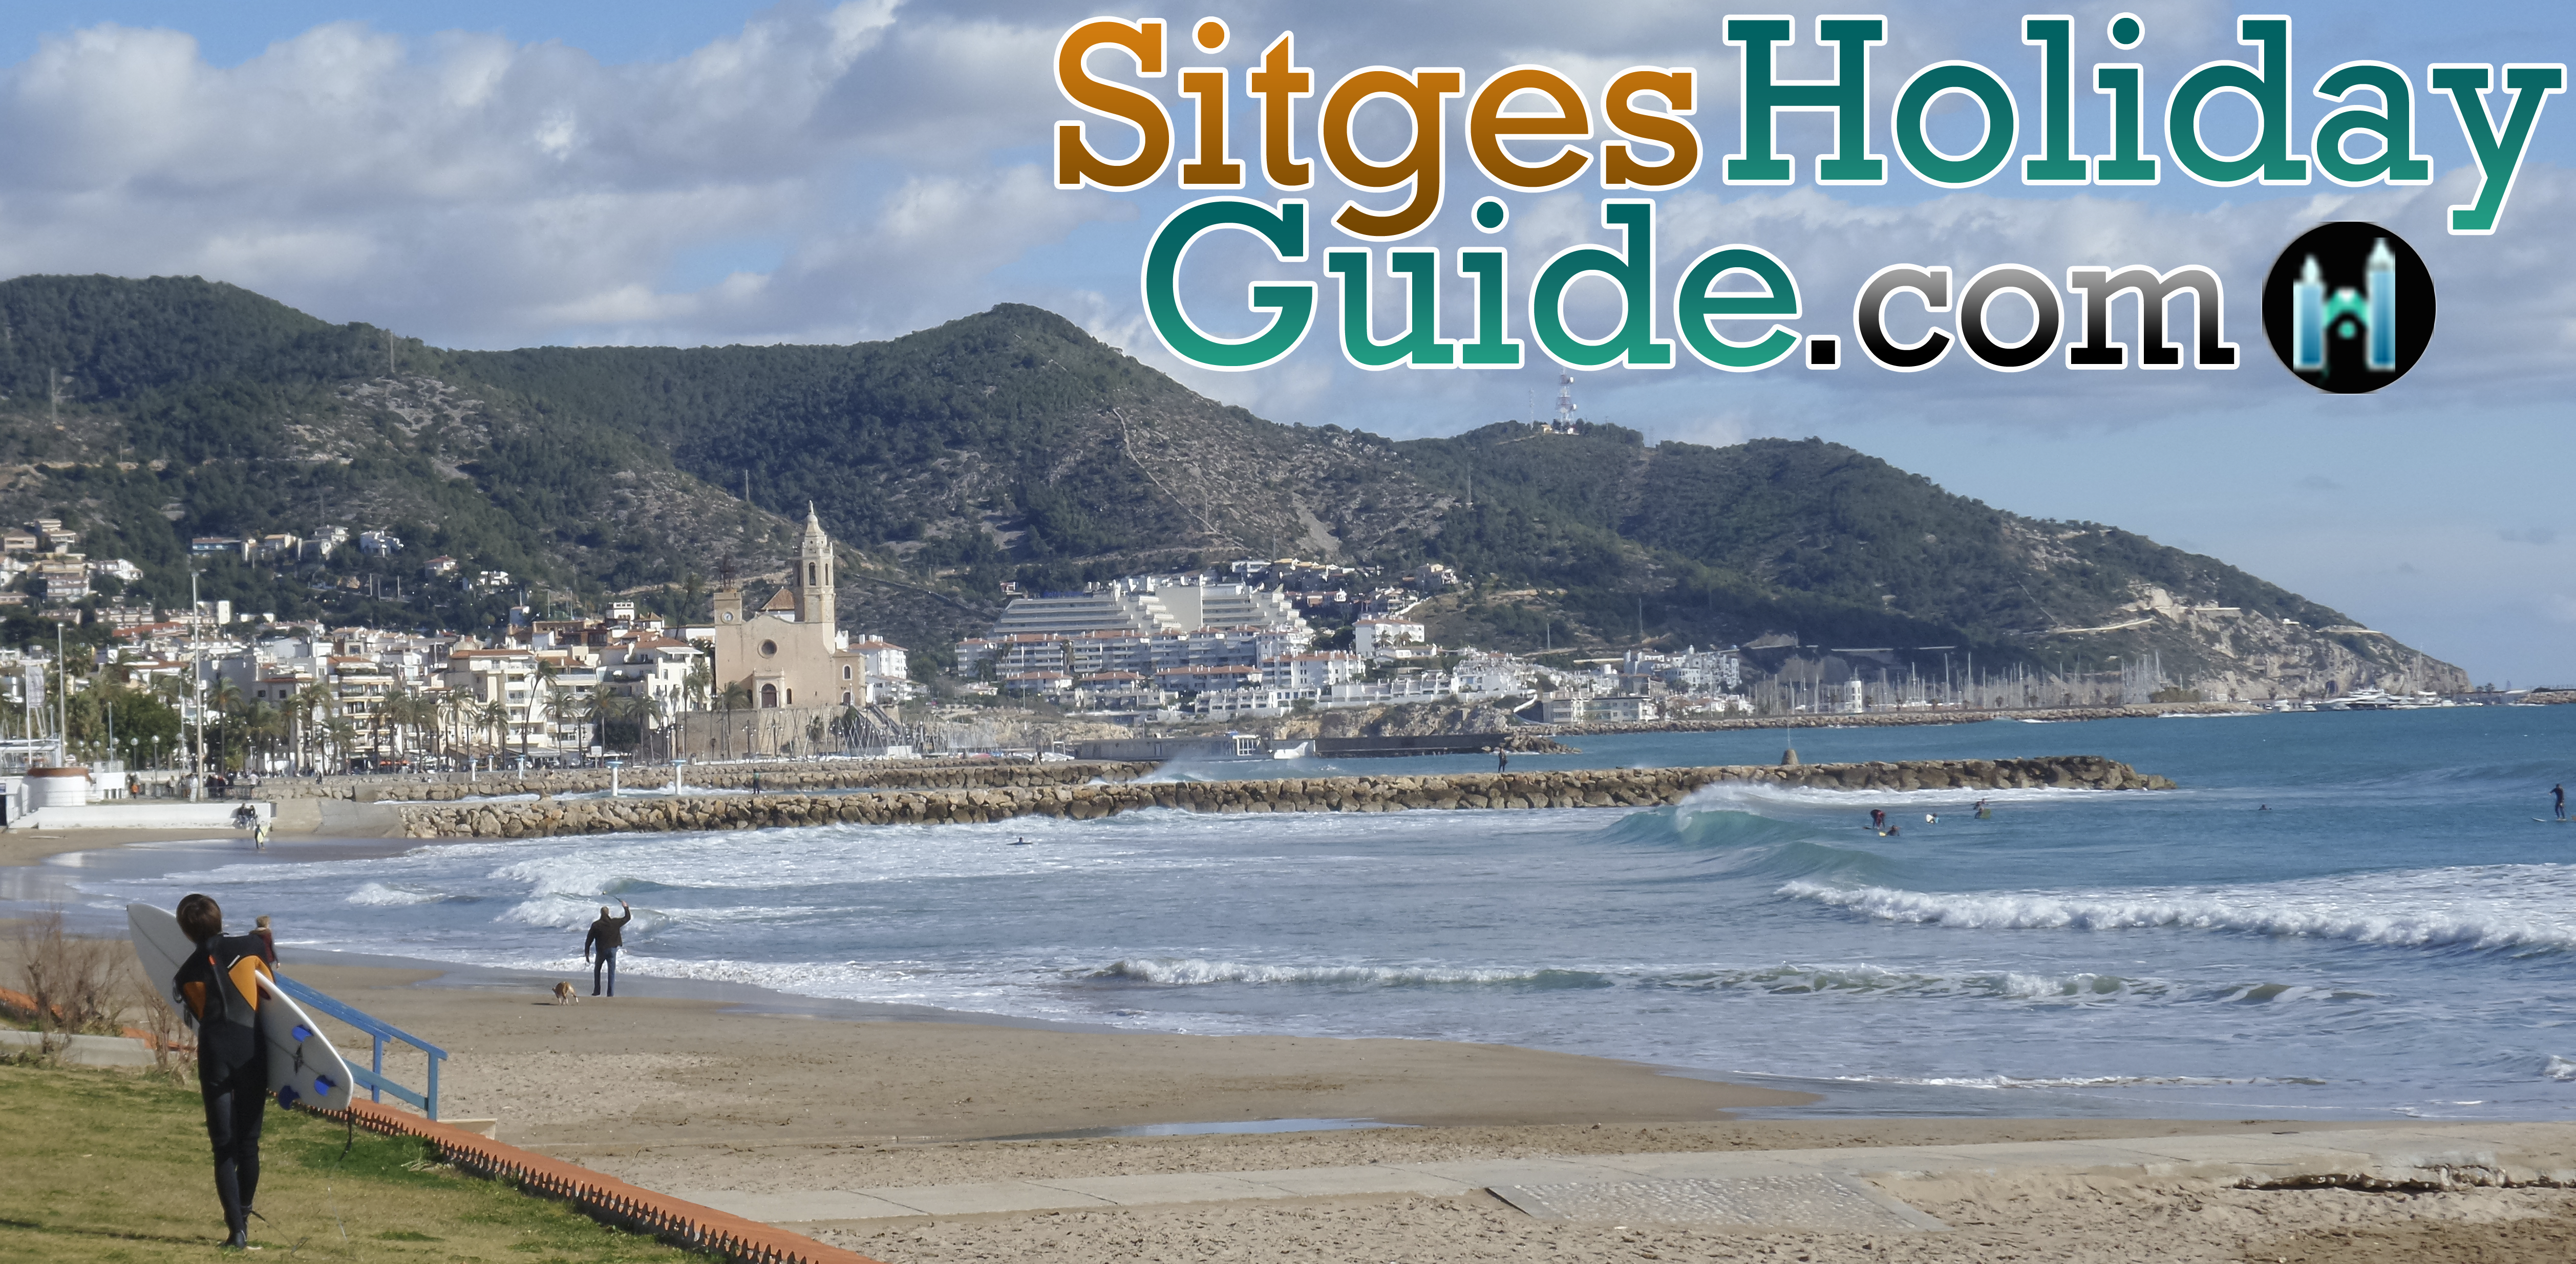 Sitges-Holiday-Guide-Coast (1)